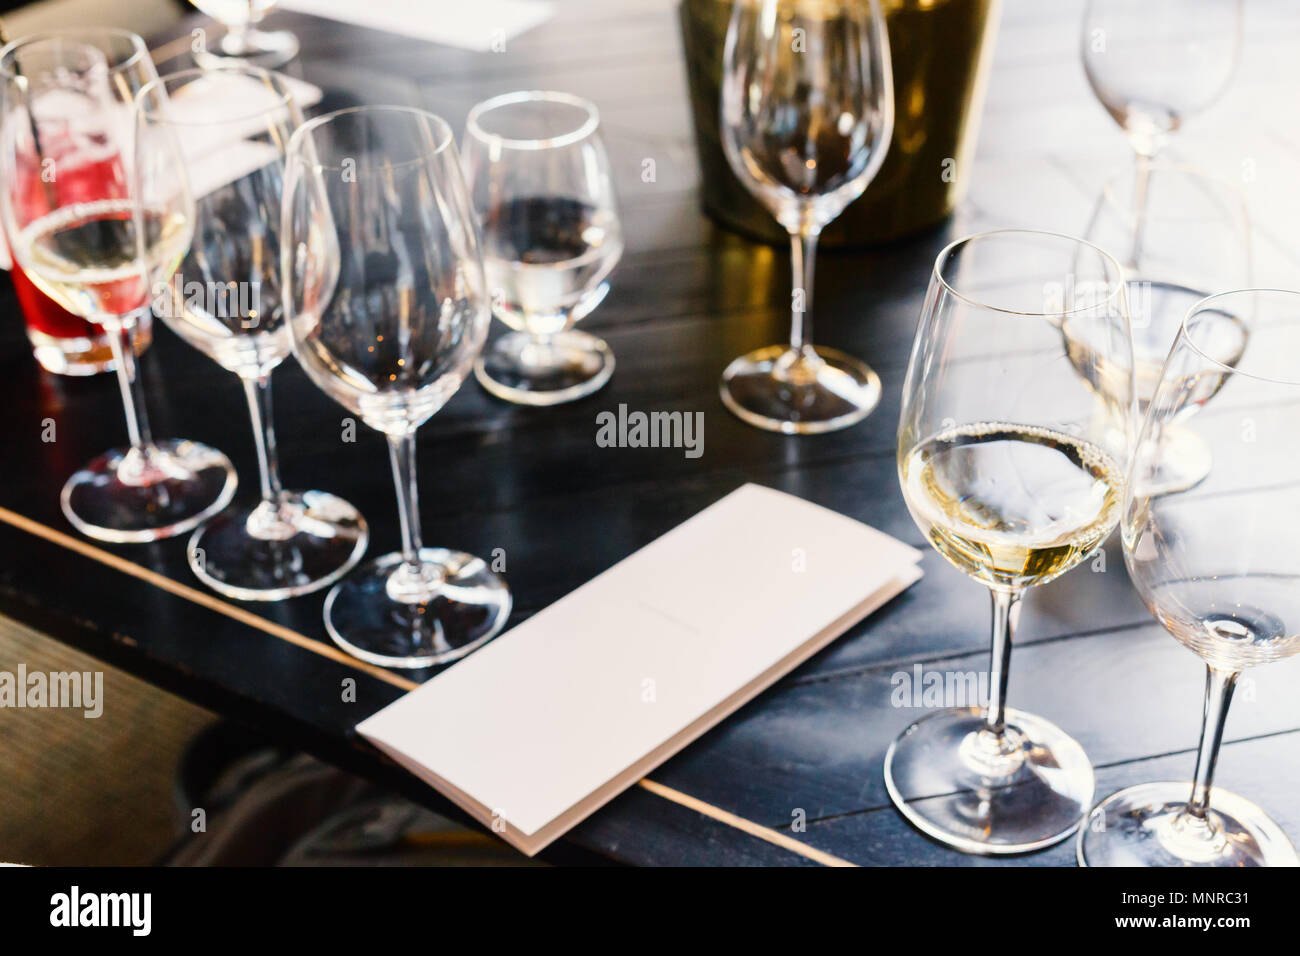 Wine tasting in South Africa estate in Western Cape wine-growing region - Stock Image